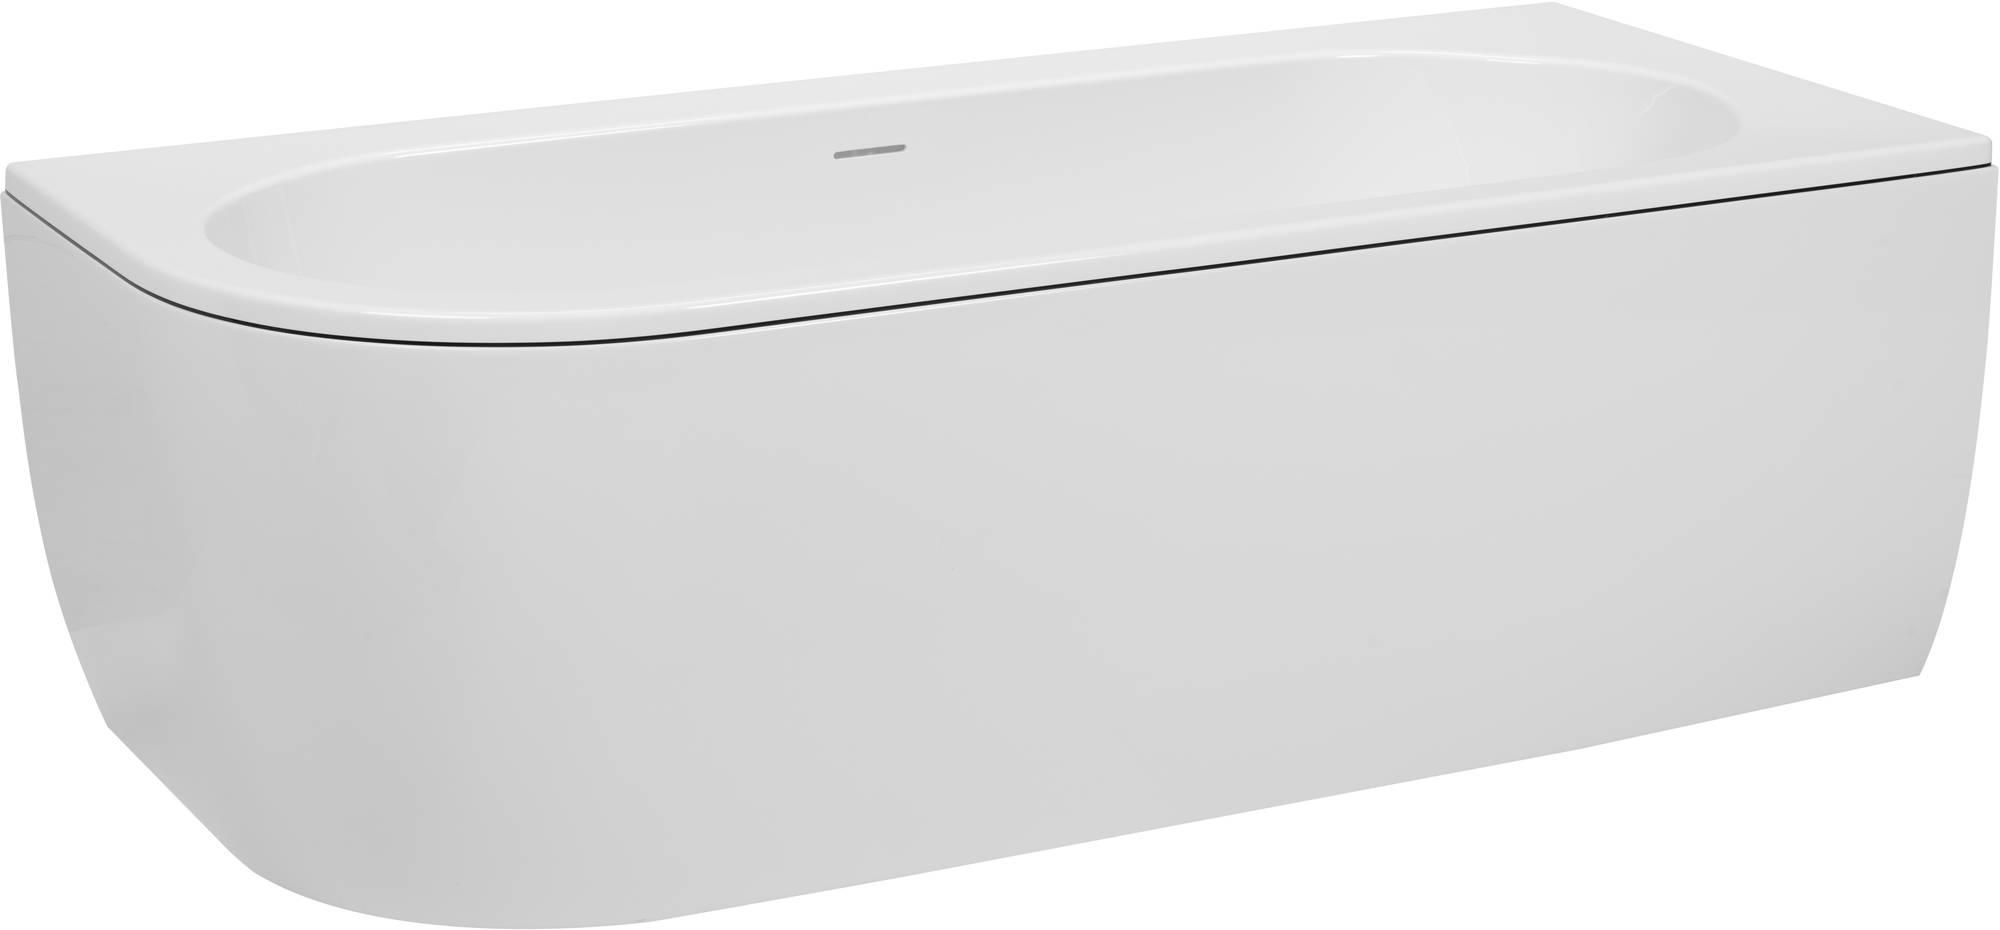 Saniselect Bad Back to Wall R 180x80x60 cm Wit met Zwart Rand